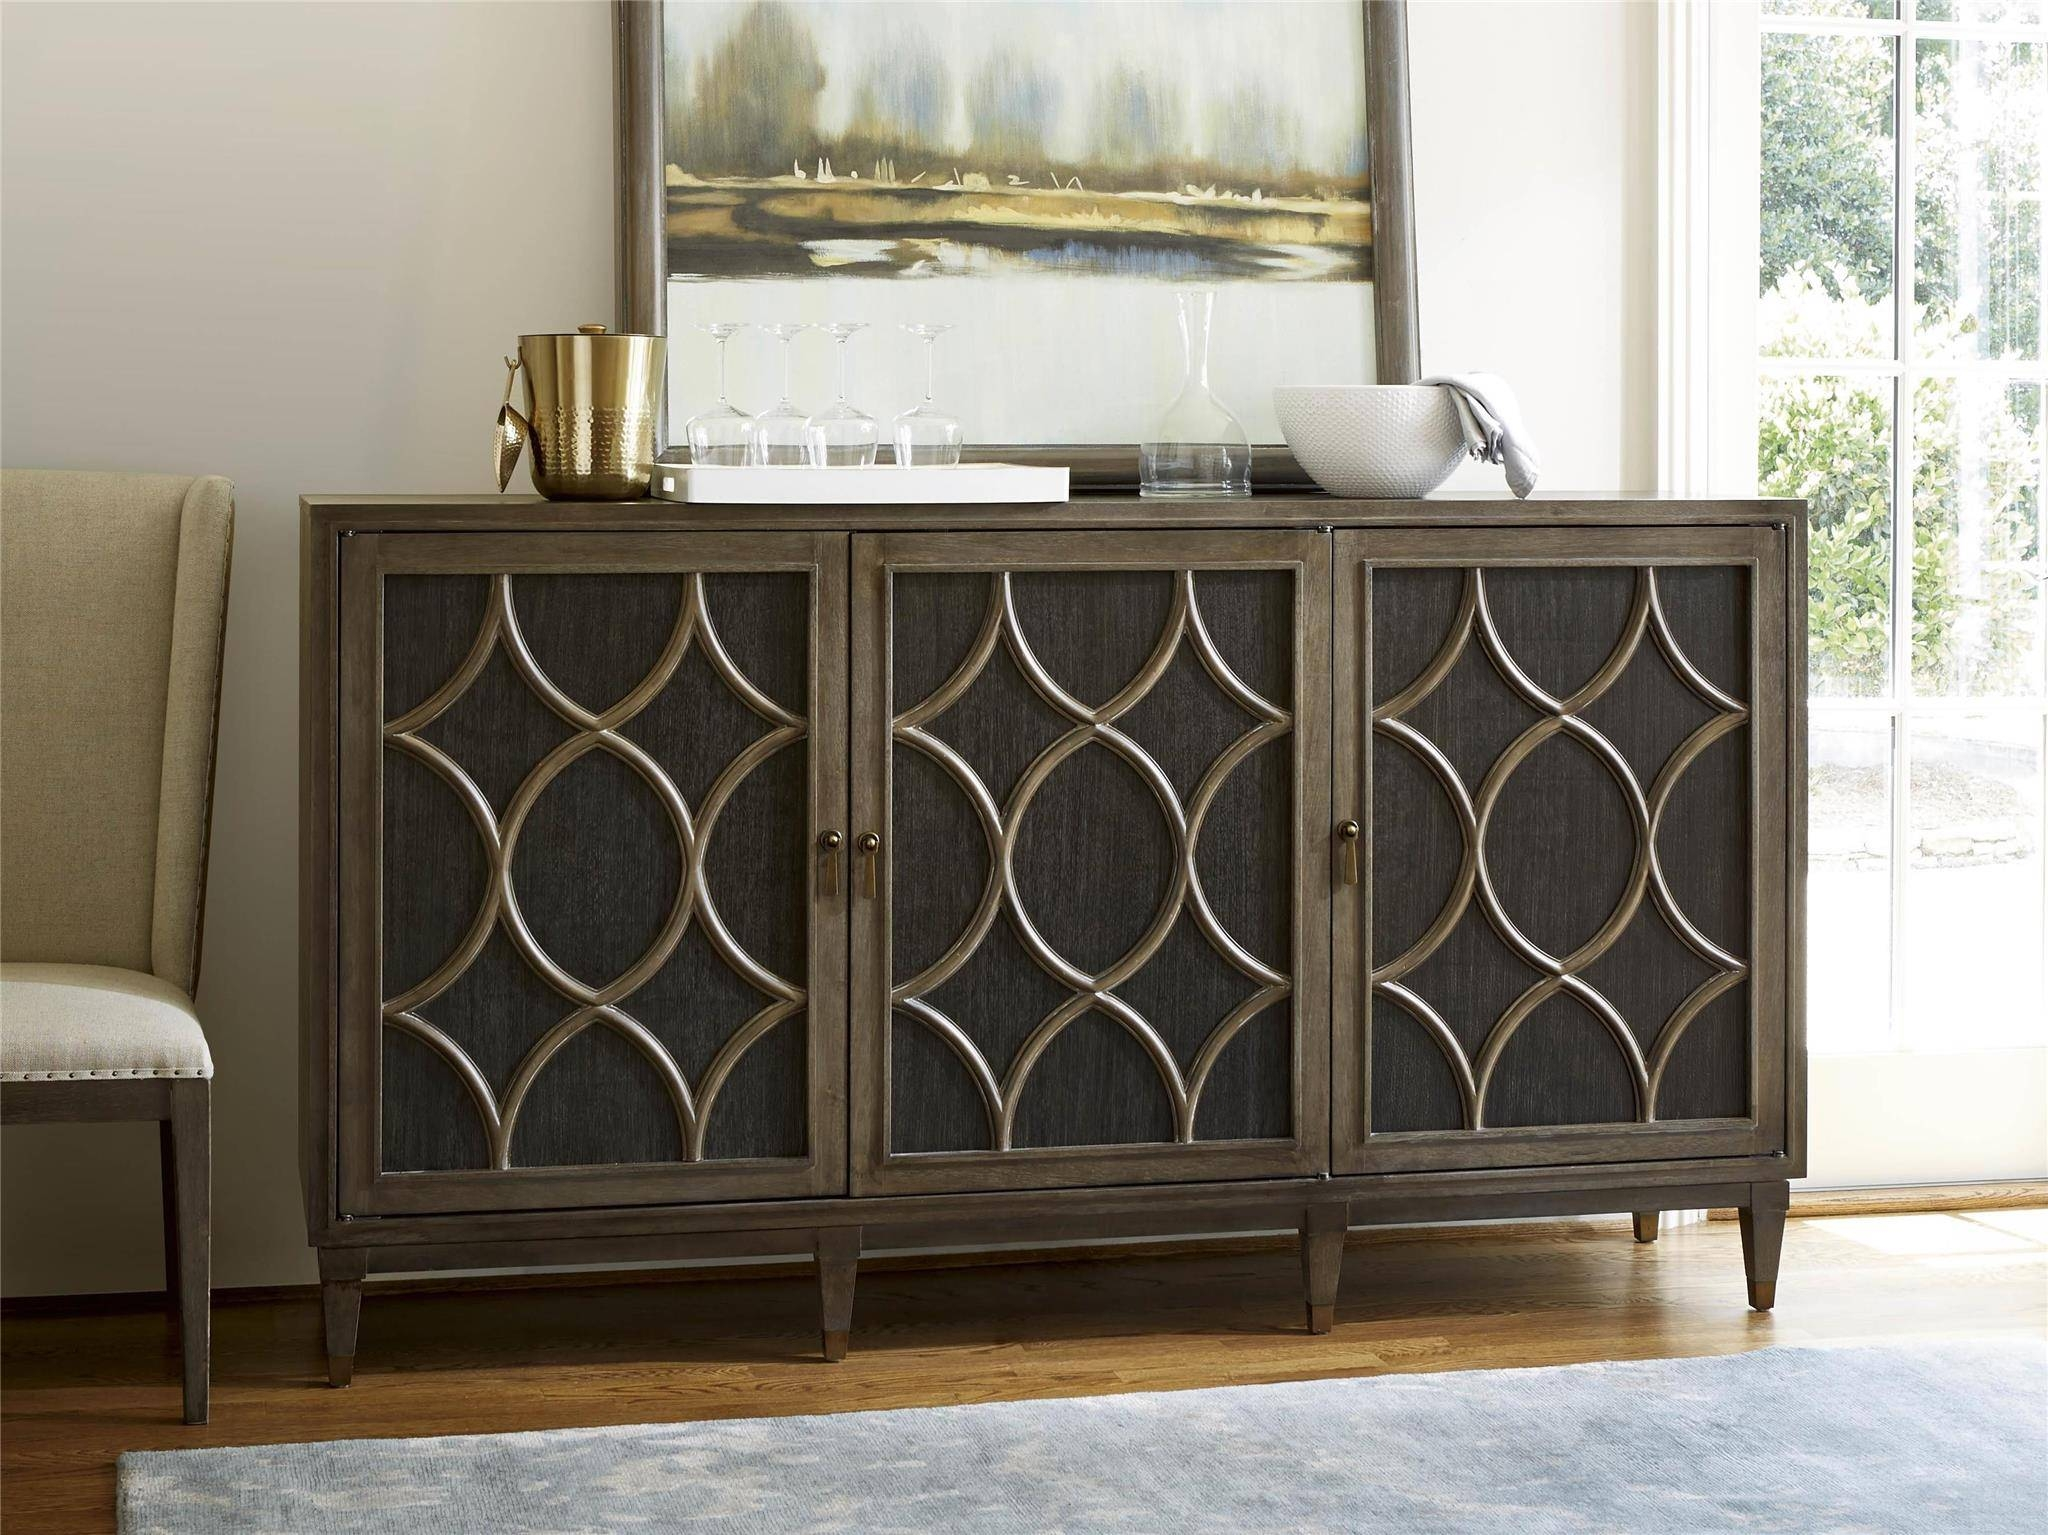 Inspiration about Universal Furniture | Playlist | Sideboard With Regard To Current Furniture Sideboards (#12 of 15)